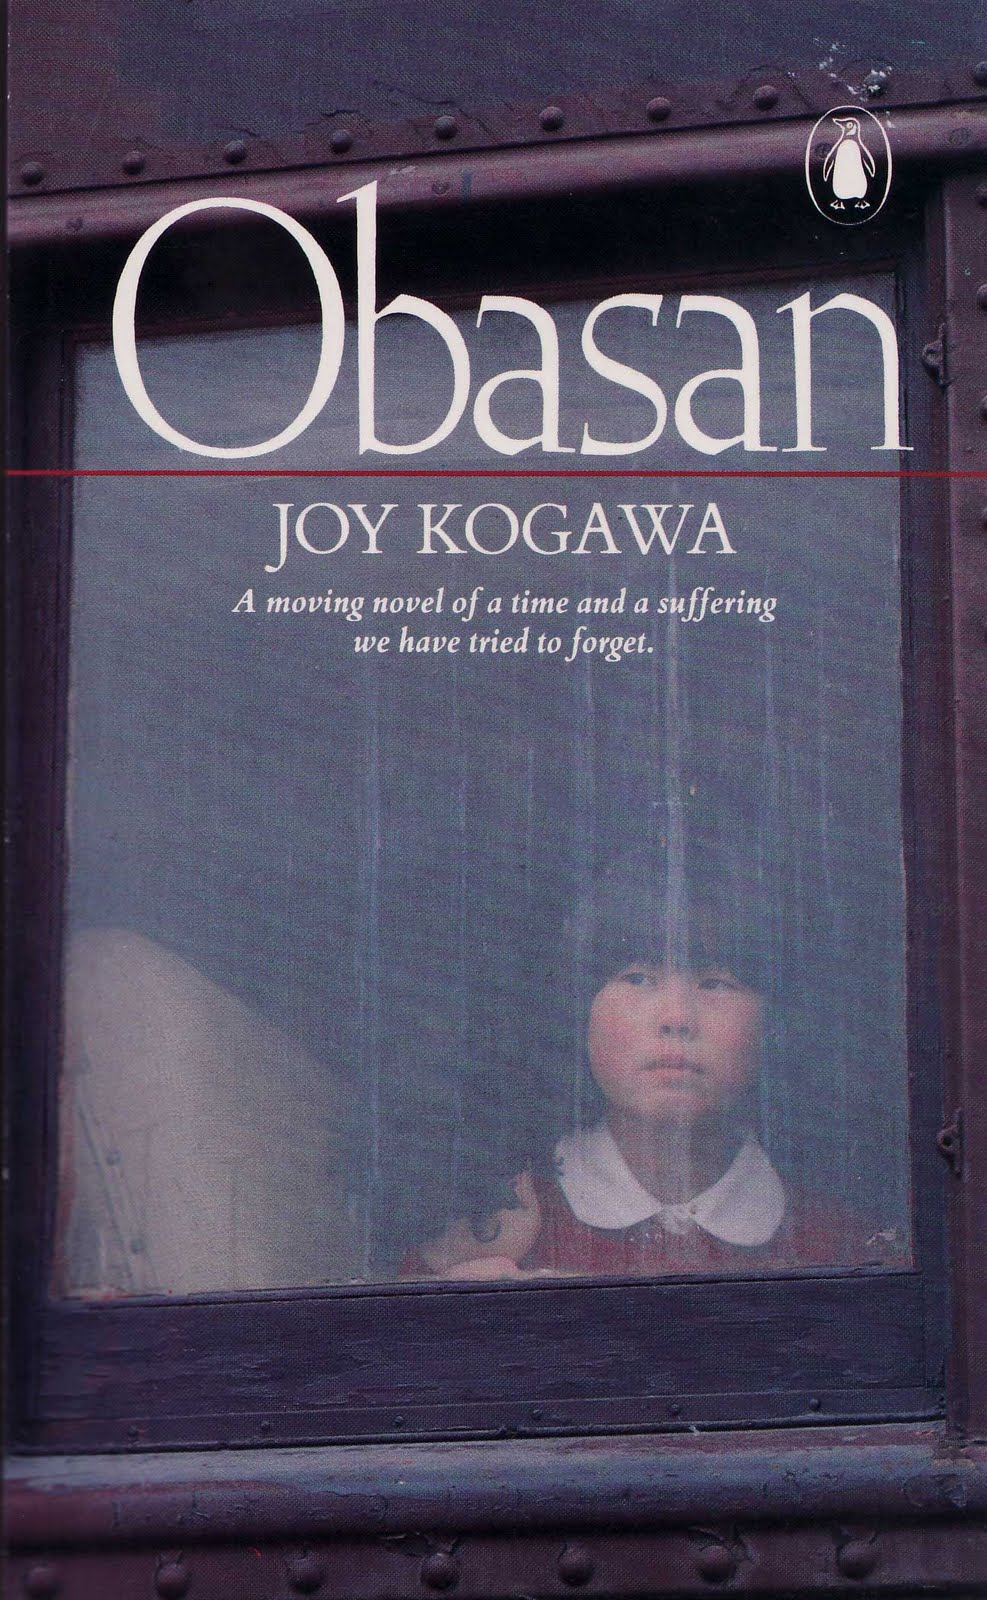 grinning and happy joy kogawa essays Irc bookz 2015 06 just select torrent and download it to your device.